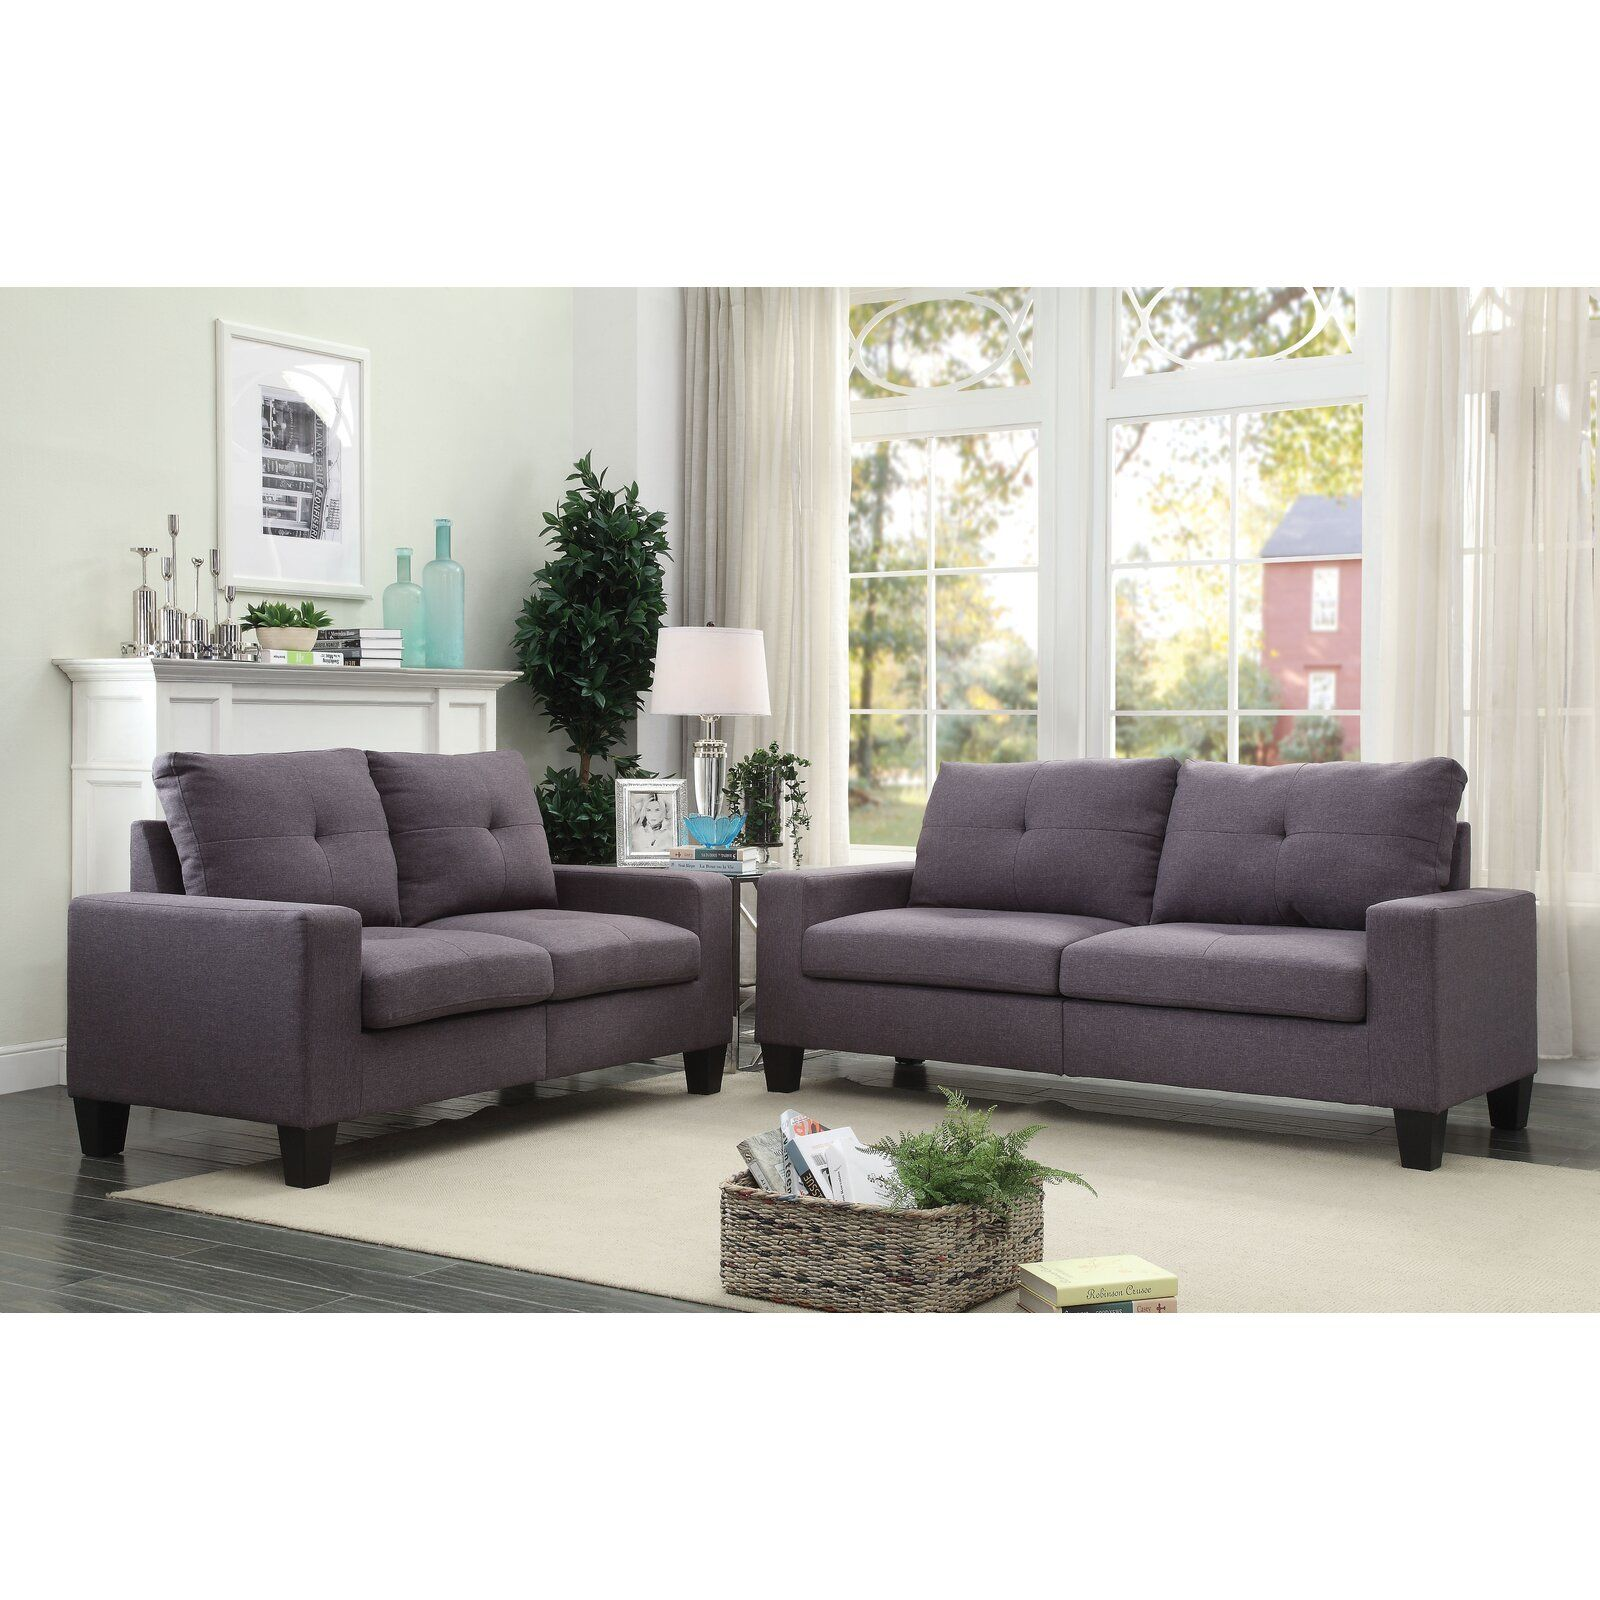 Offerman 2 Piece Living Room Set Loveseat Living Room Sofa And